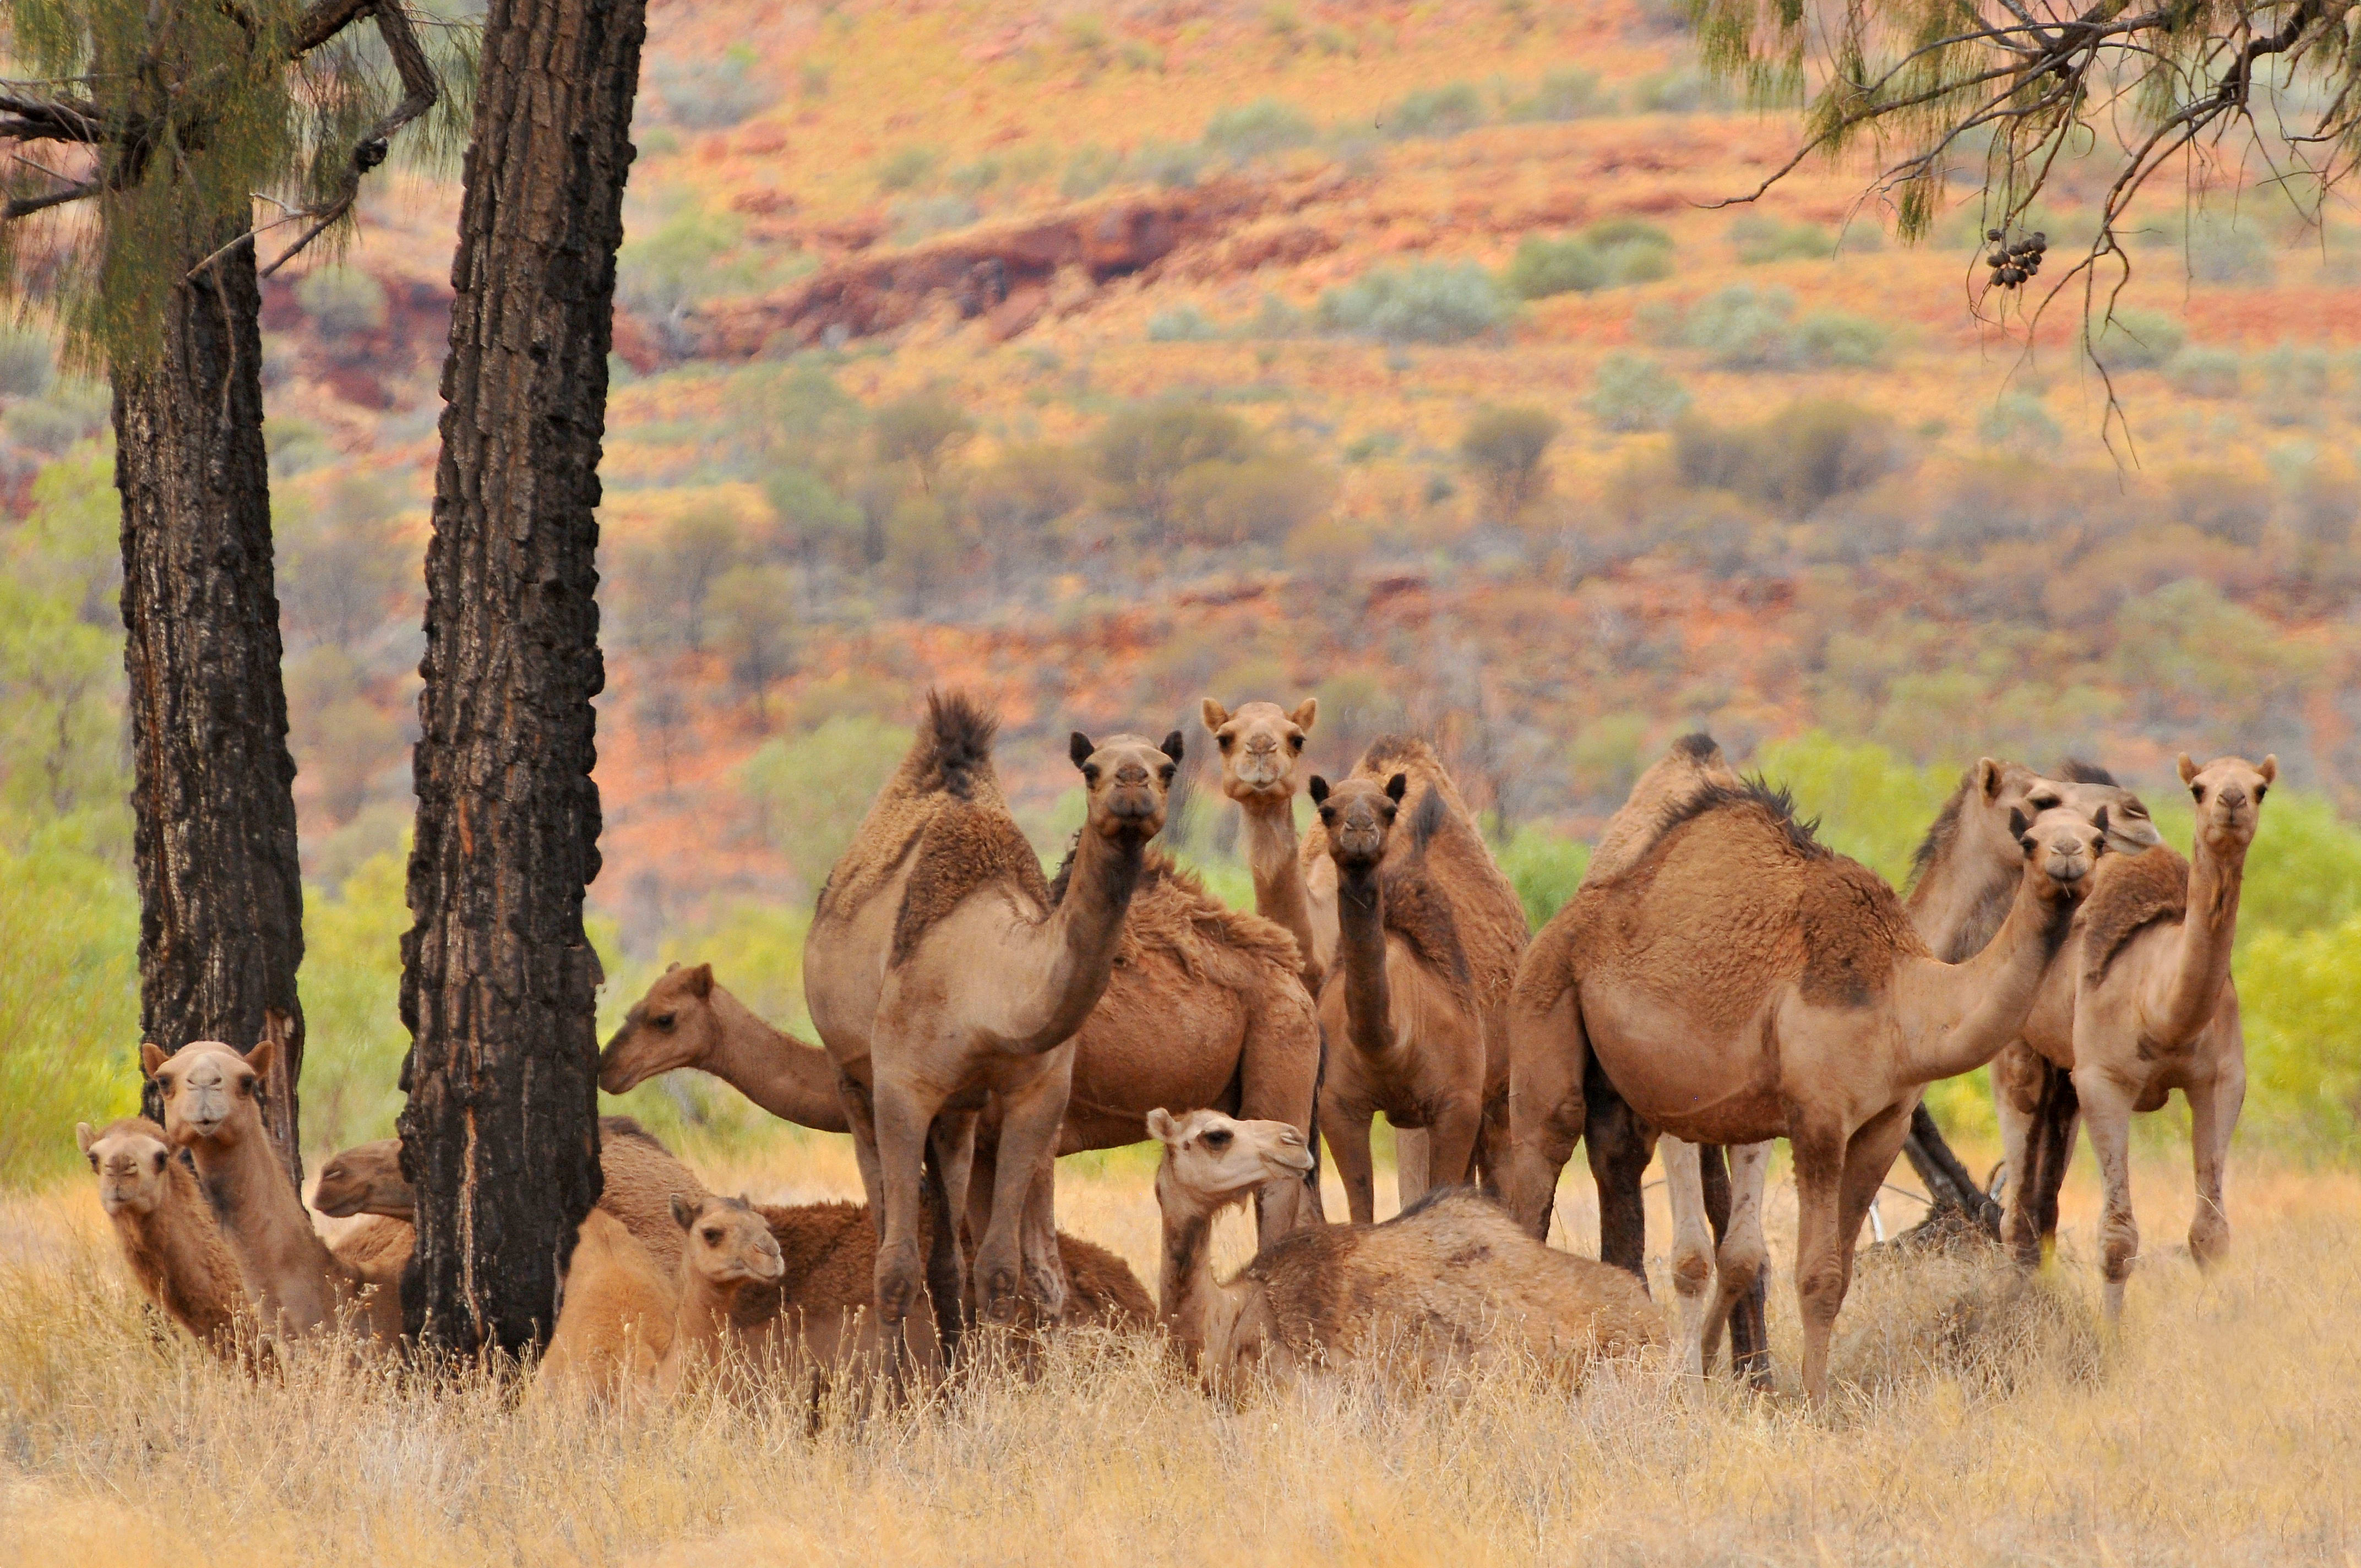 camels in the Australian Outback